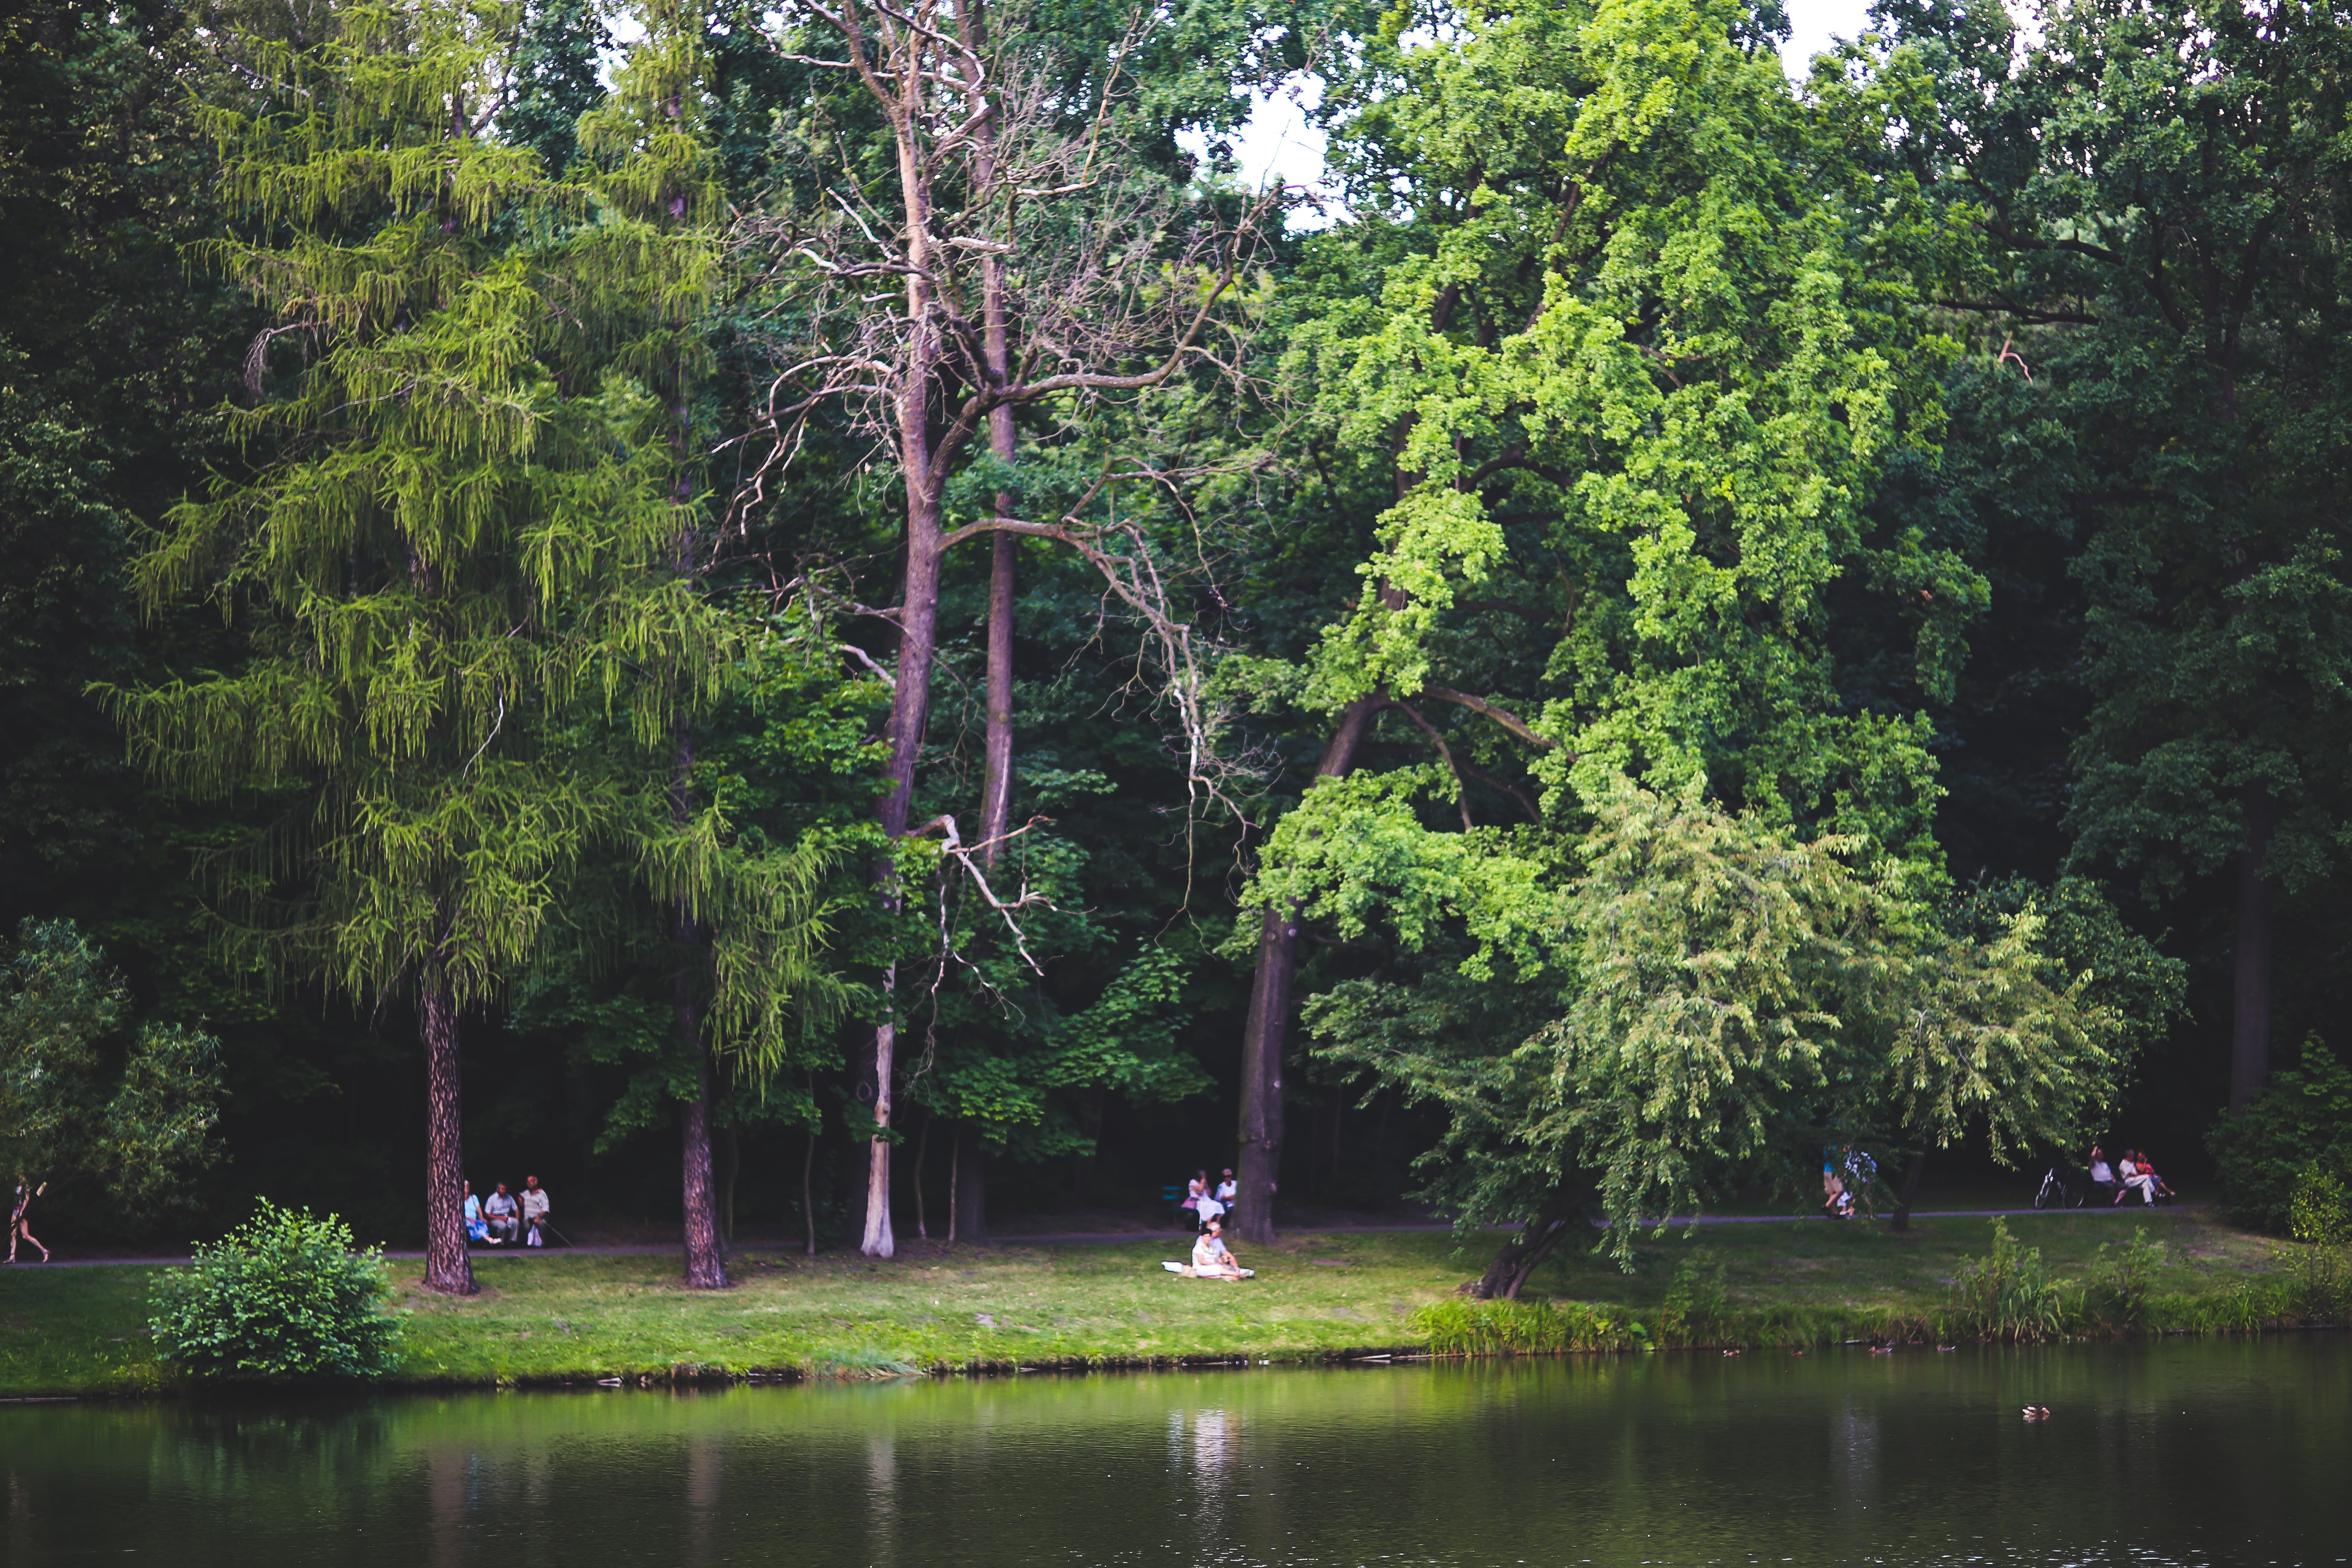 People in the park, Edge, Fairy-tale, Forest, Grass, HQ Photo